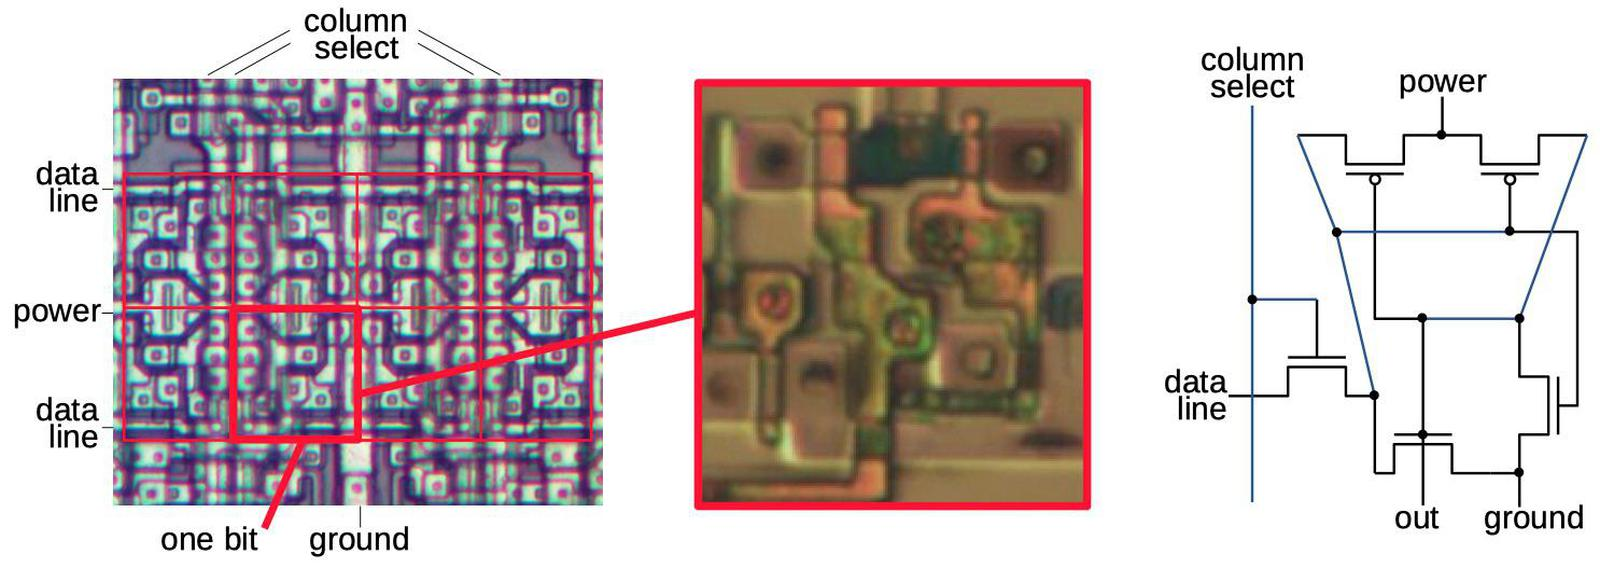 Eight bits of configuration memory, four above and four below. The red box shows one bit. When a column select line is activated, the row data line is loaded into the corresponding cells. The closeup and schematic show one bit of configuration memory. Die photo from siliconpr0n.